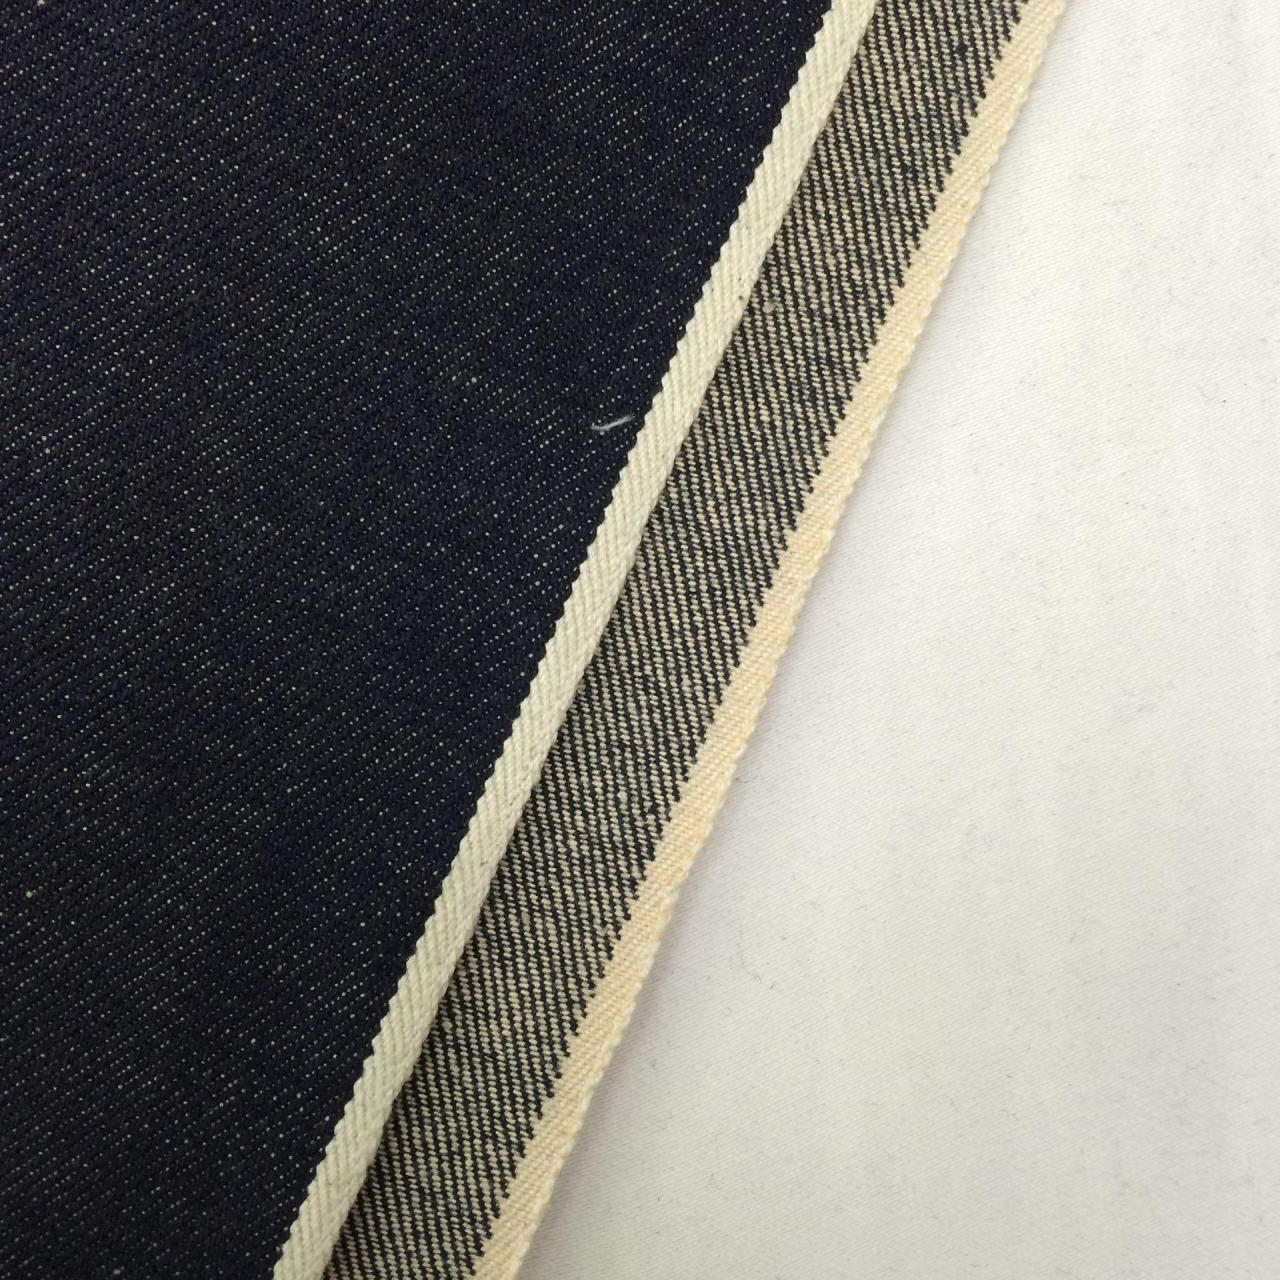 Buy cheap Stretch selvage denim fabric 13.3oz Selvedge Jeans Mens Fabric With Slub Yarns W9216 from wholesalers